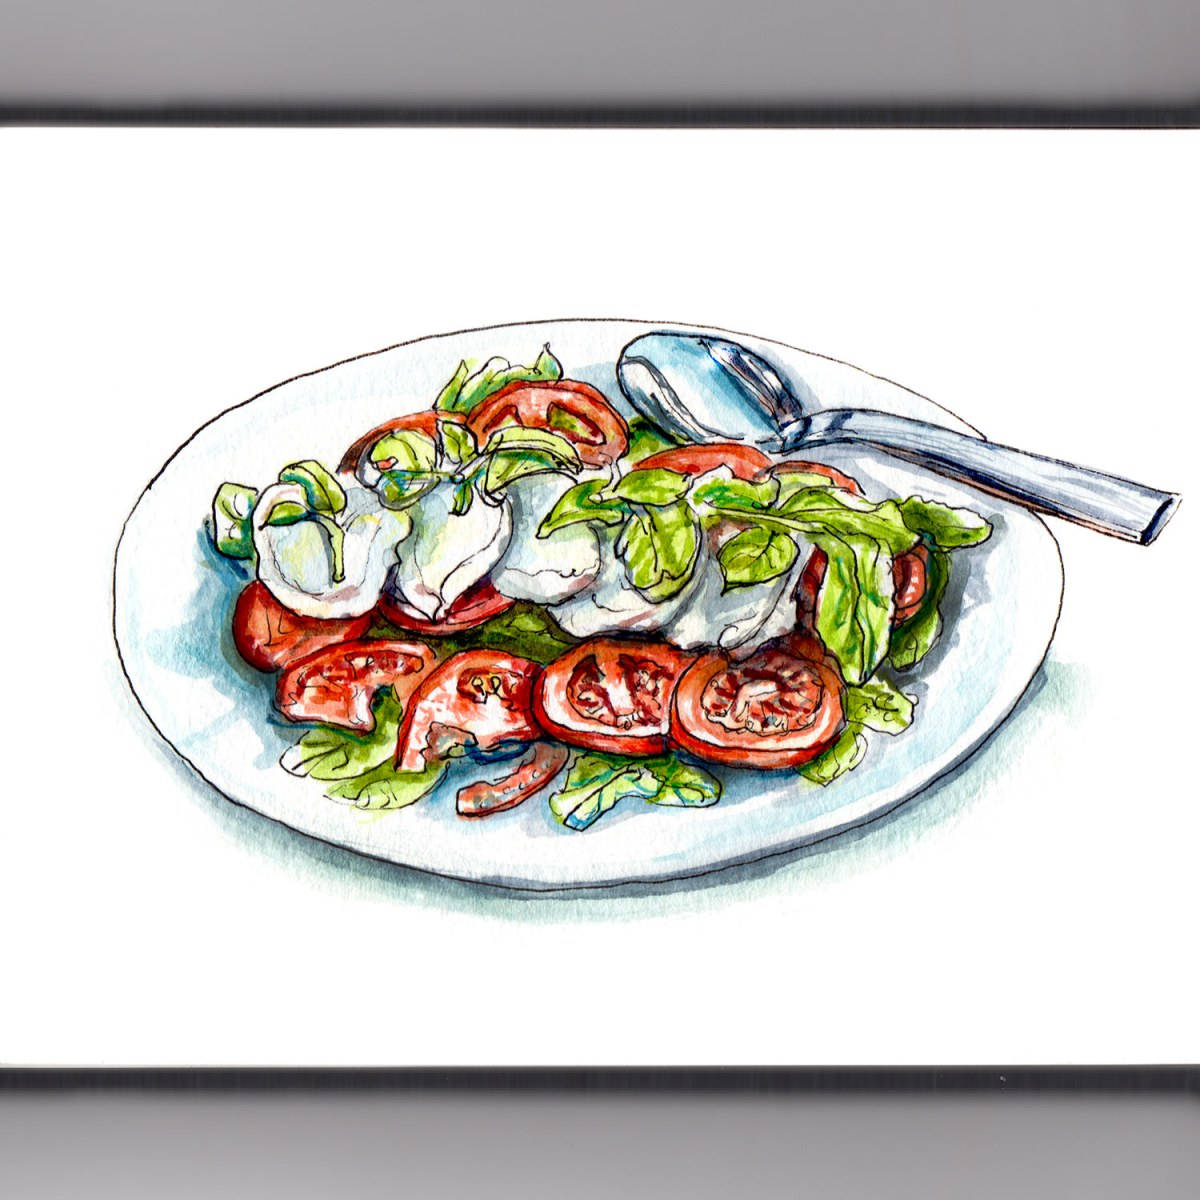 Day 19 - #WorldWatercolorGroup - Salad Season - Caprese Salad With Tomatoes Mozarella and Basil - #doodlewash